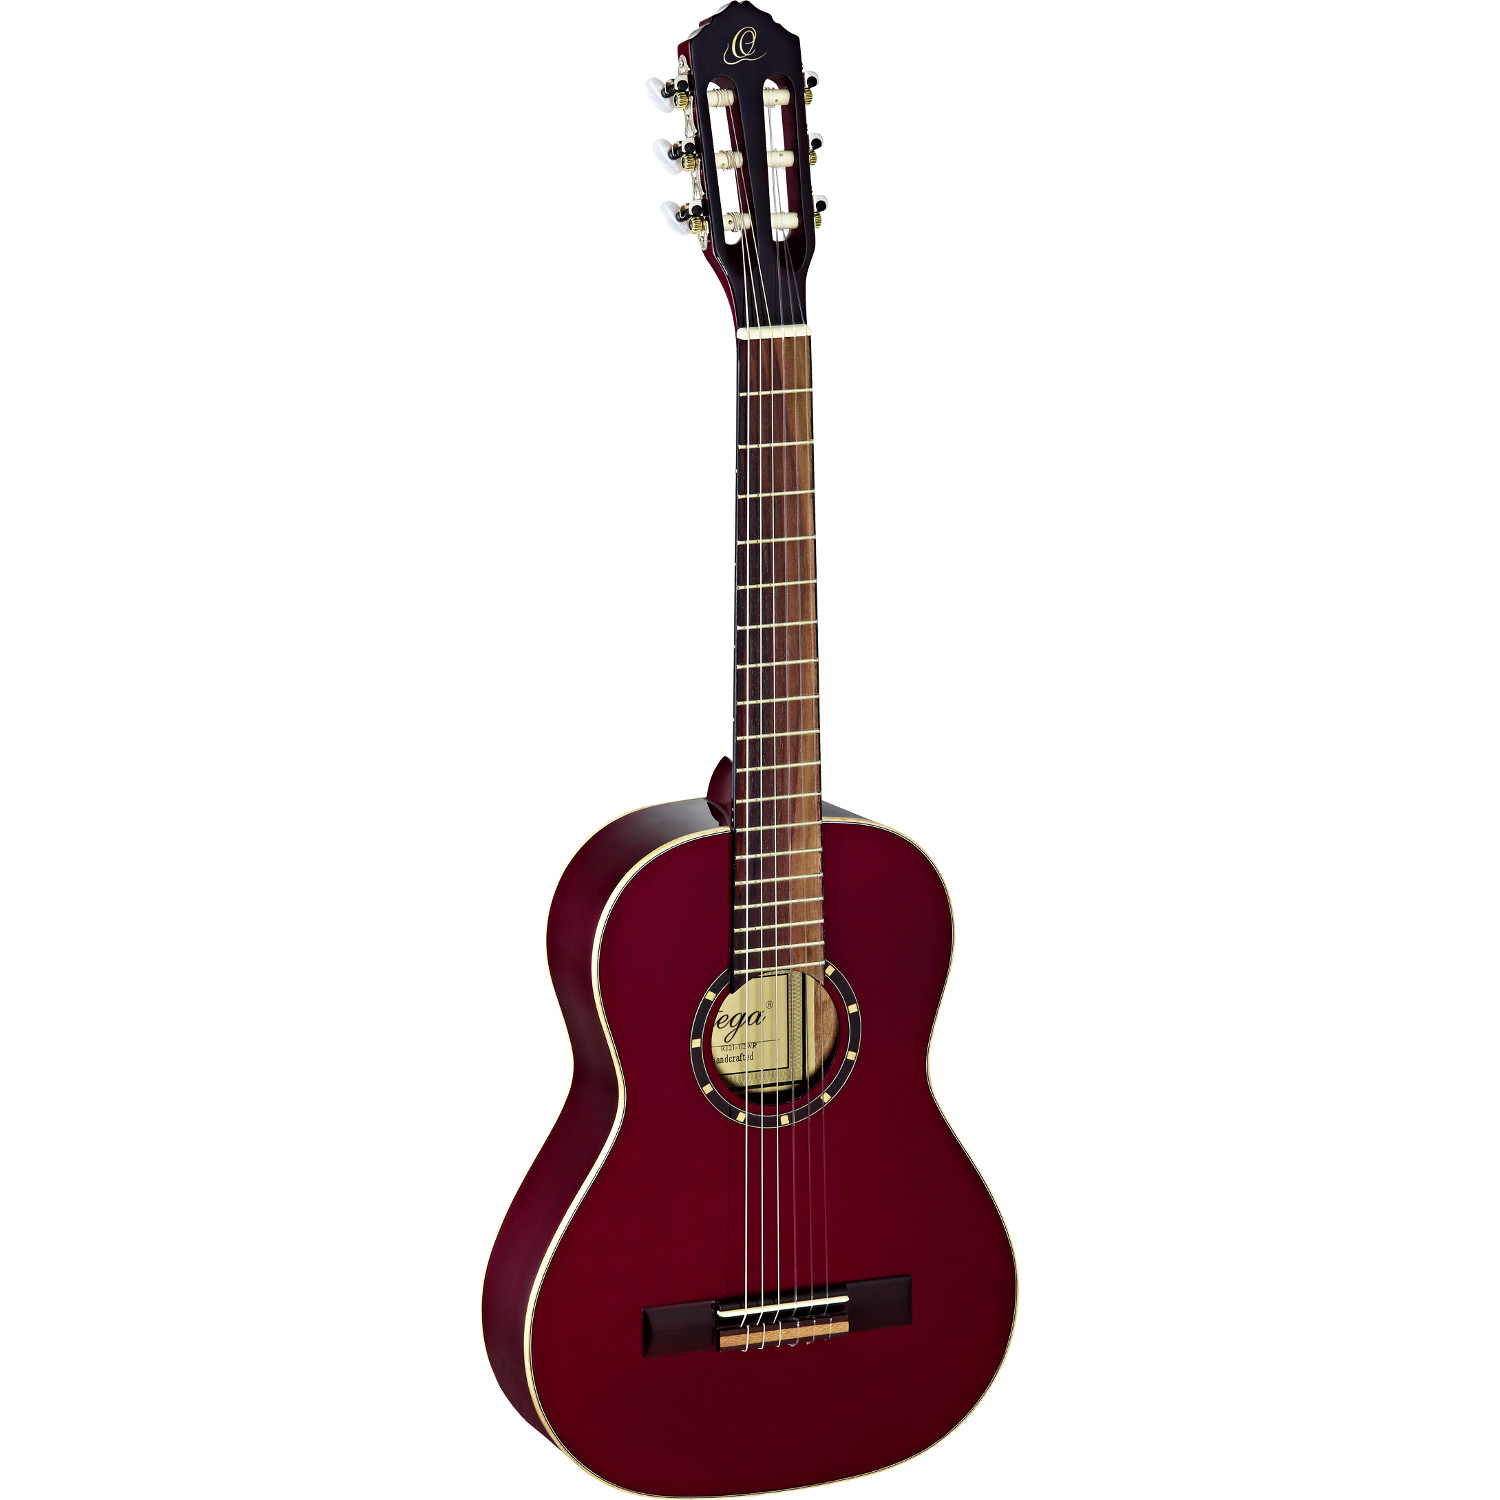 Ortega Family Series R121 1 2 wine red with gig bag